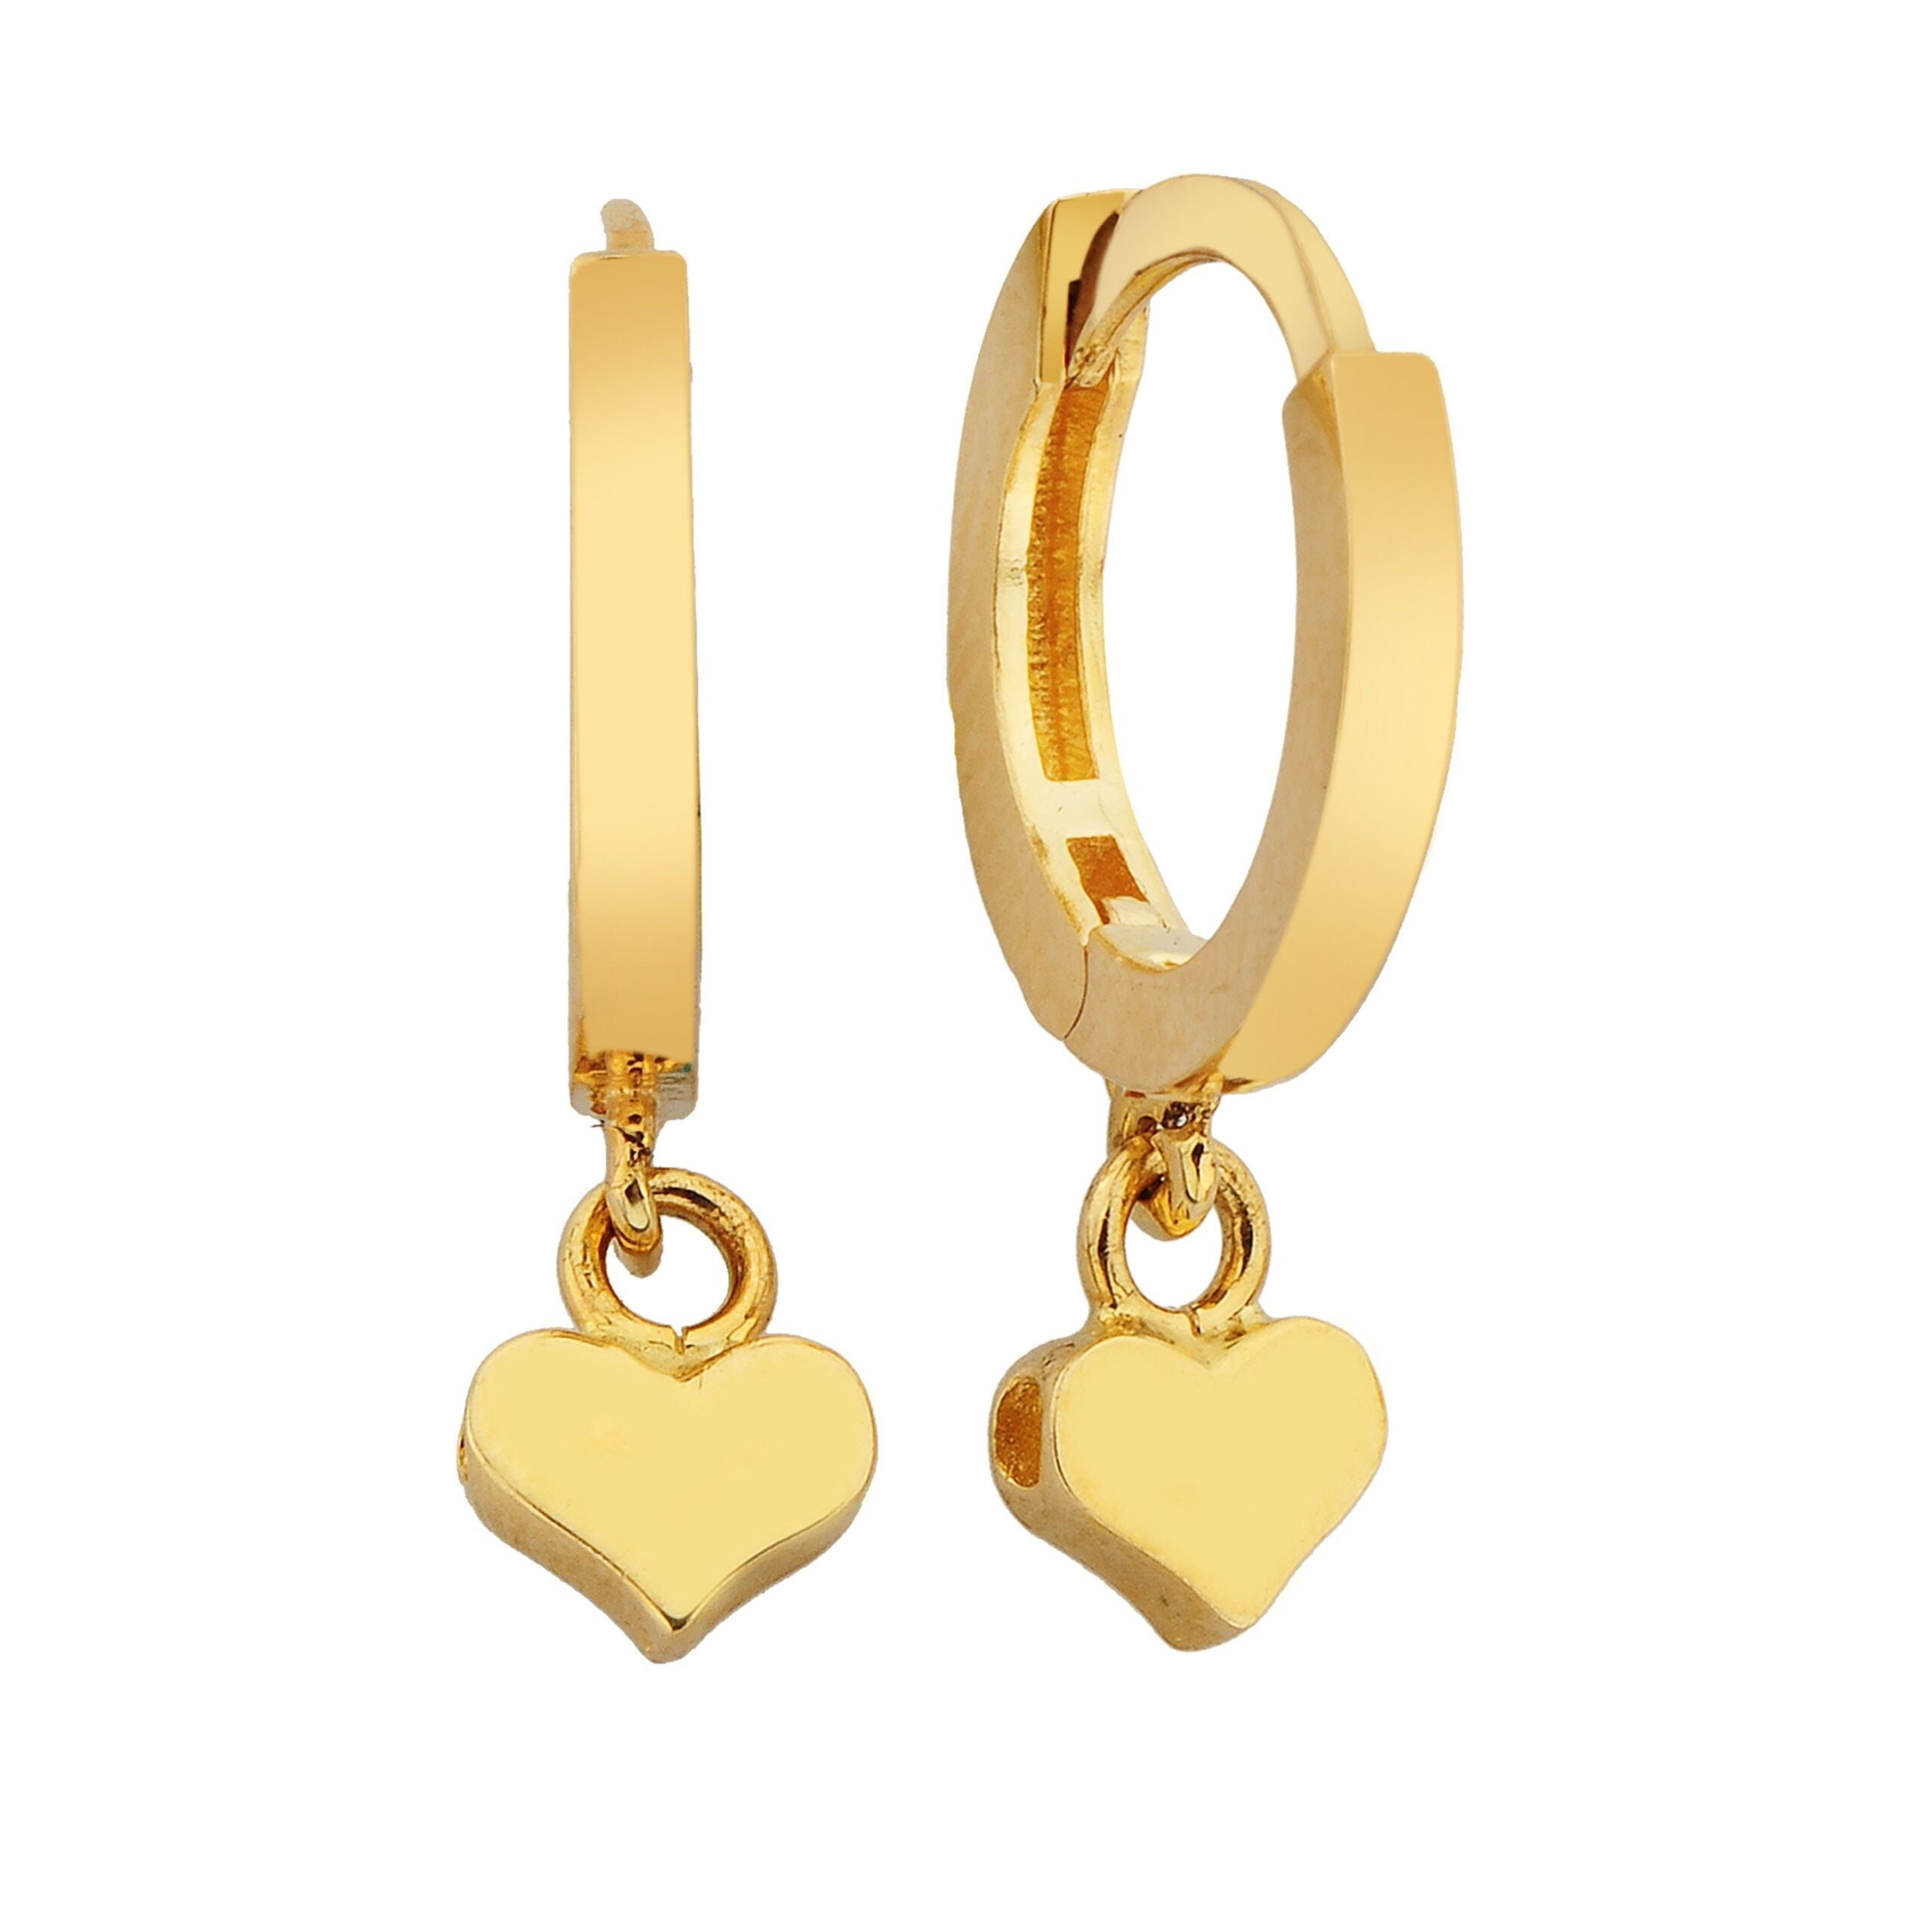 14K Real Solid Gold Heart Dangle Drop Earrings for Women love jewelry forever valentine's day birthday gift xmas christmas